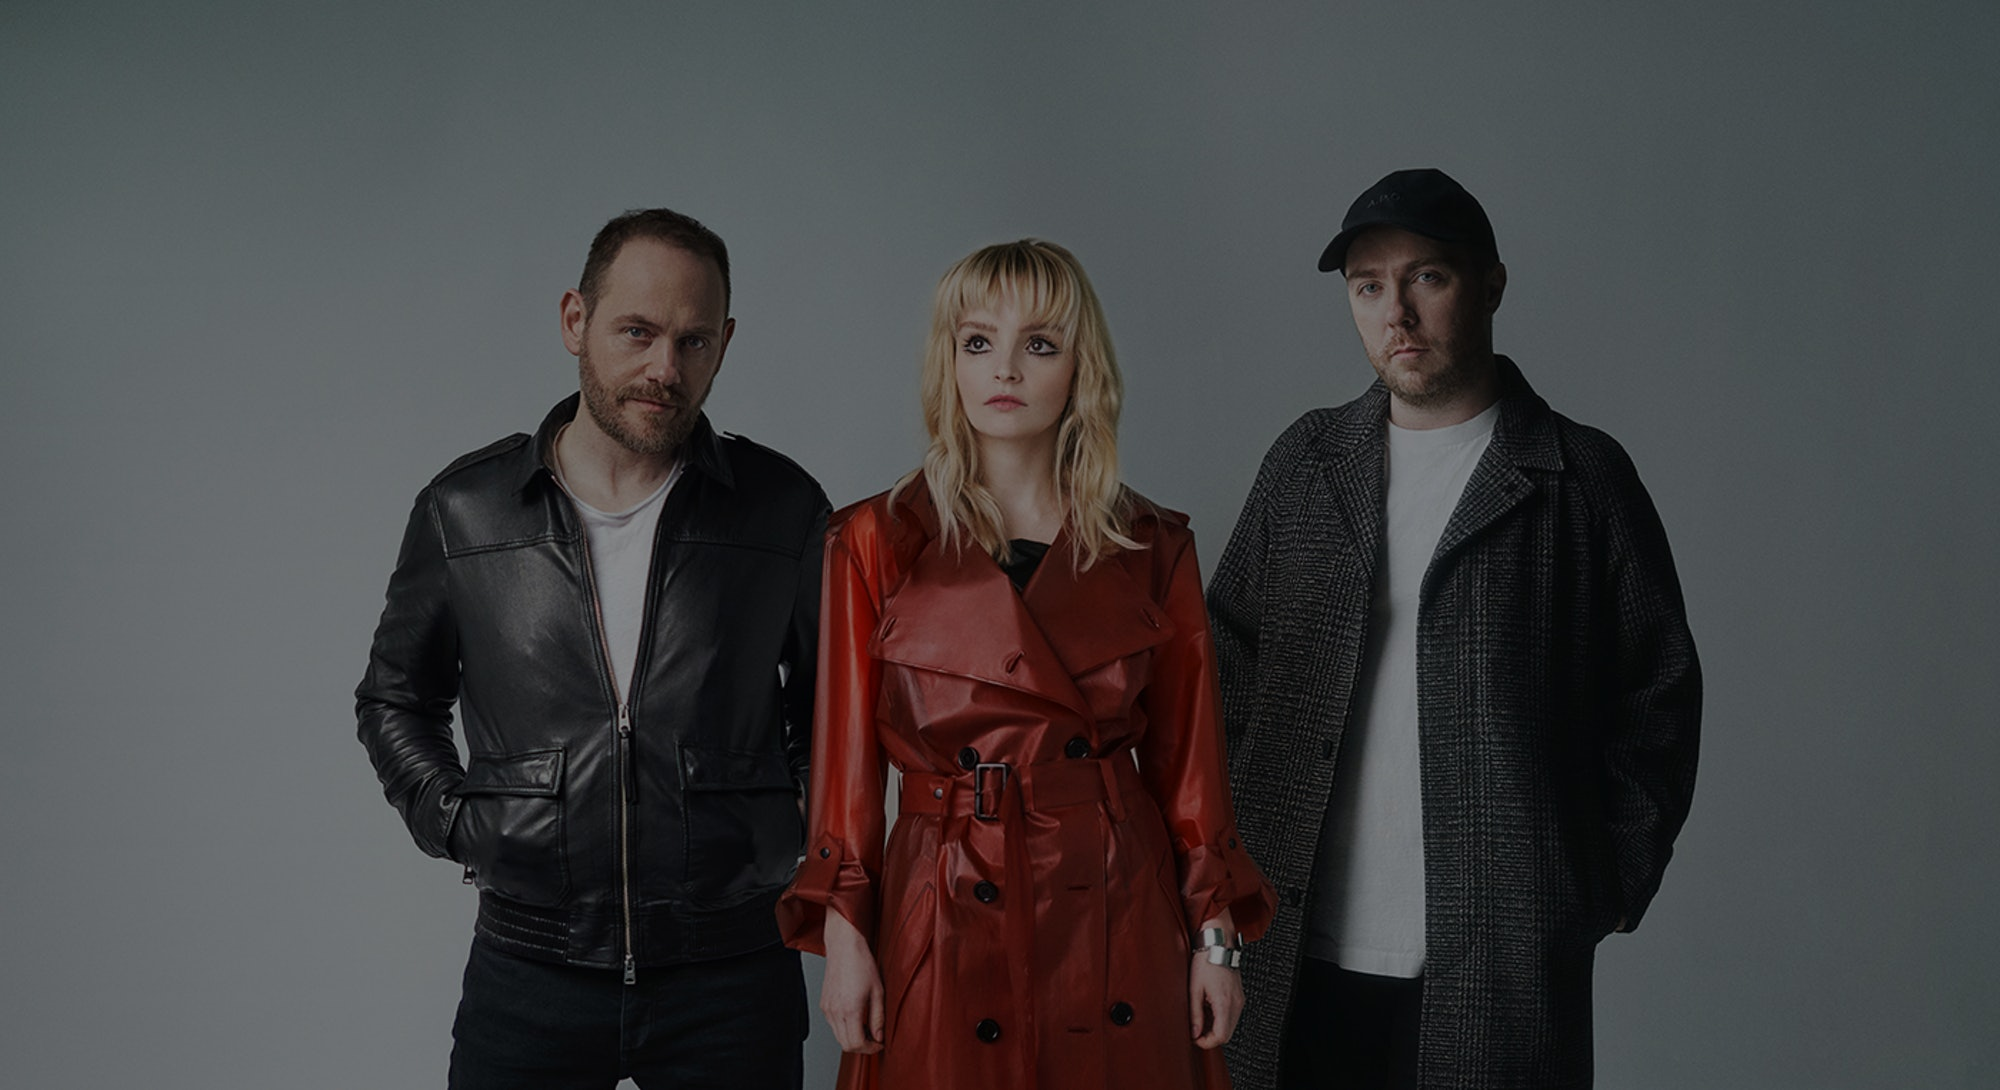 The indie synth-pop band Chvrches